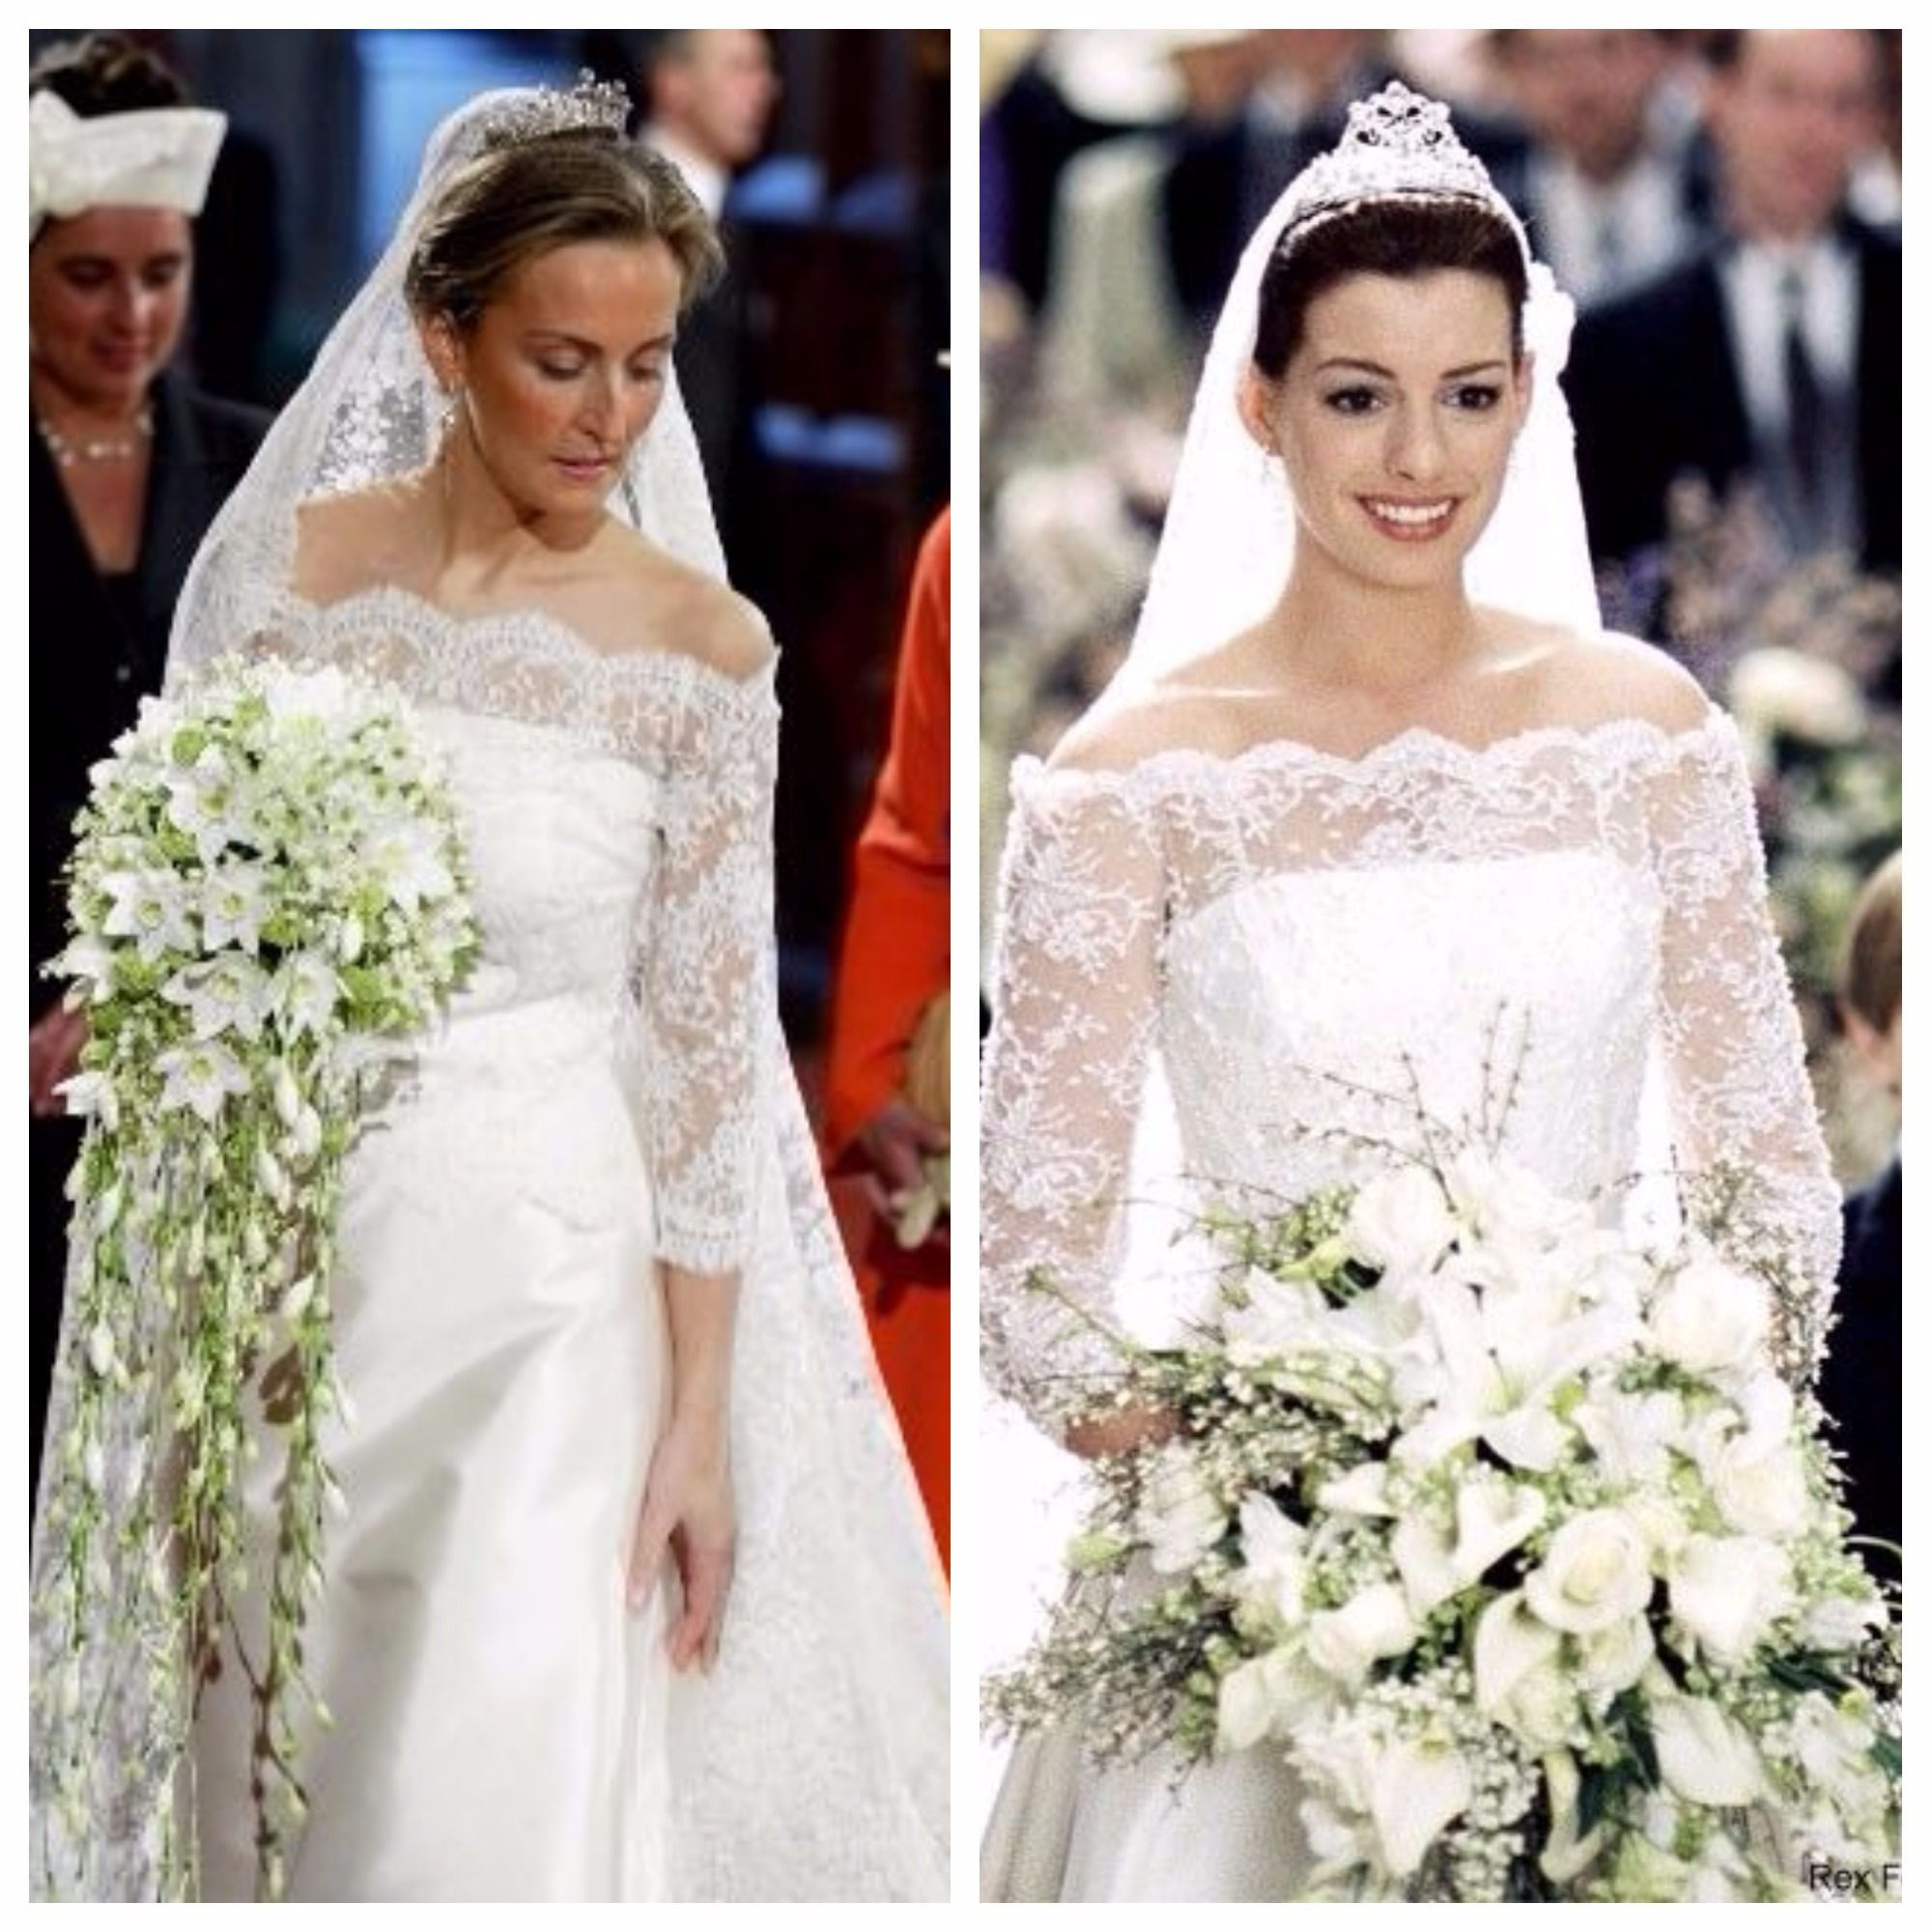 Princess Claire Of Belgium At Her 2003 Wedding In A Dress Designed